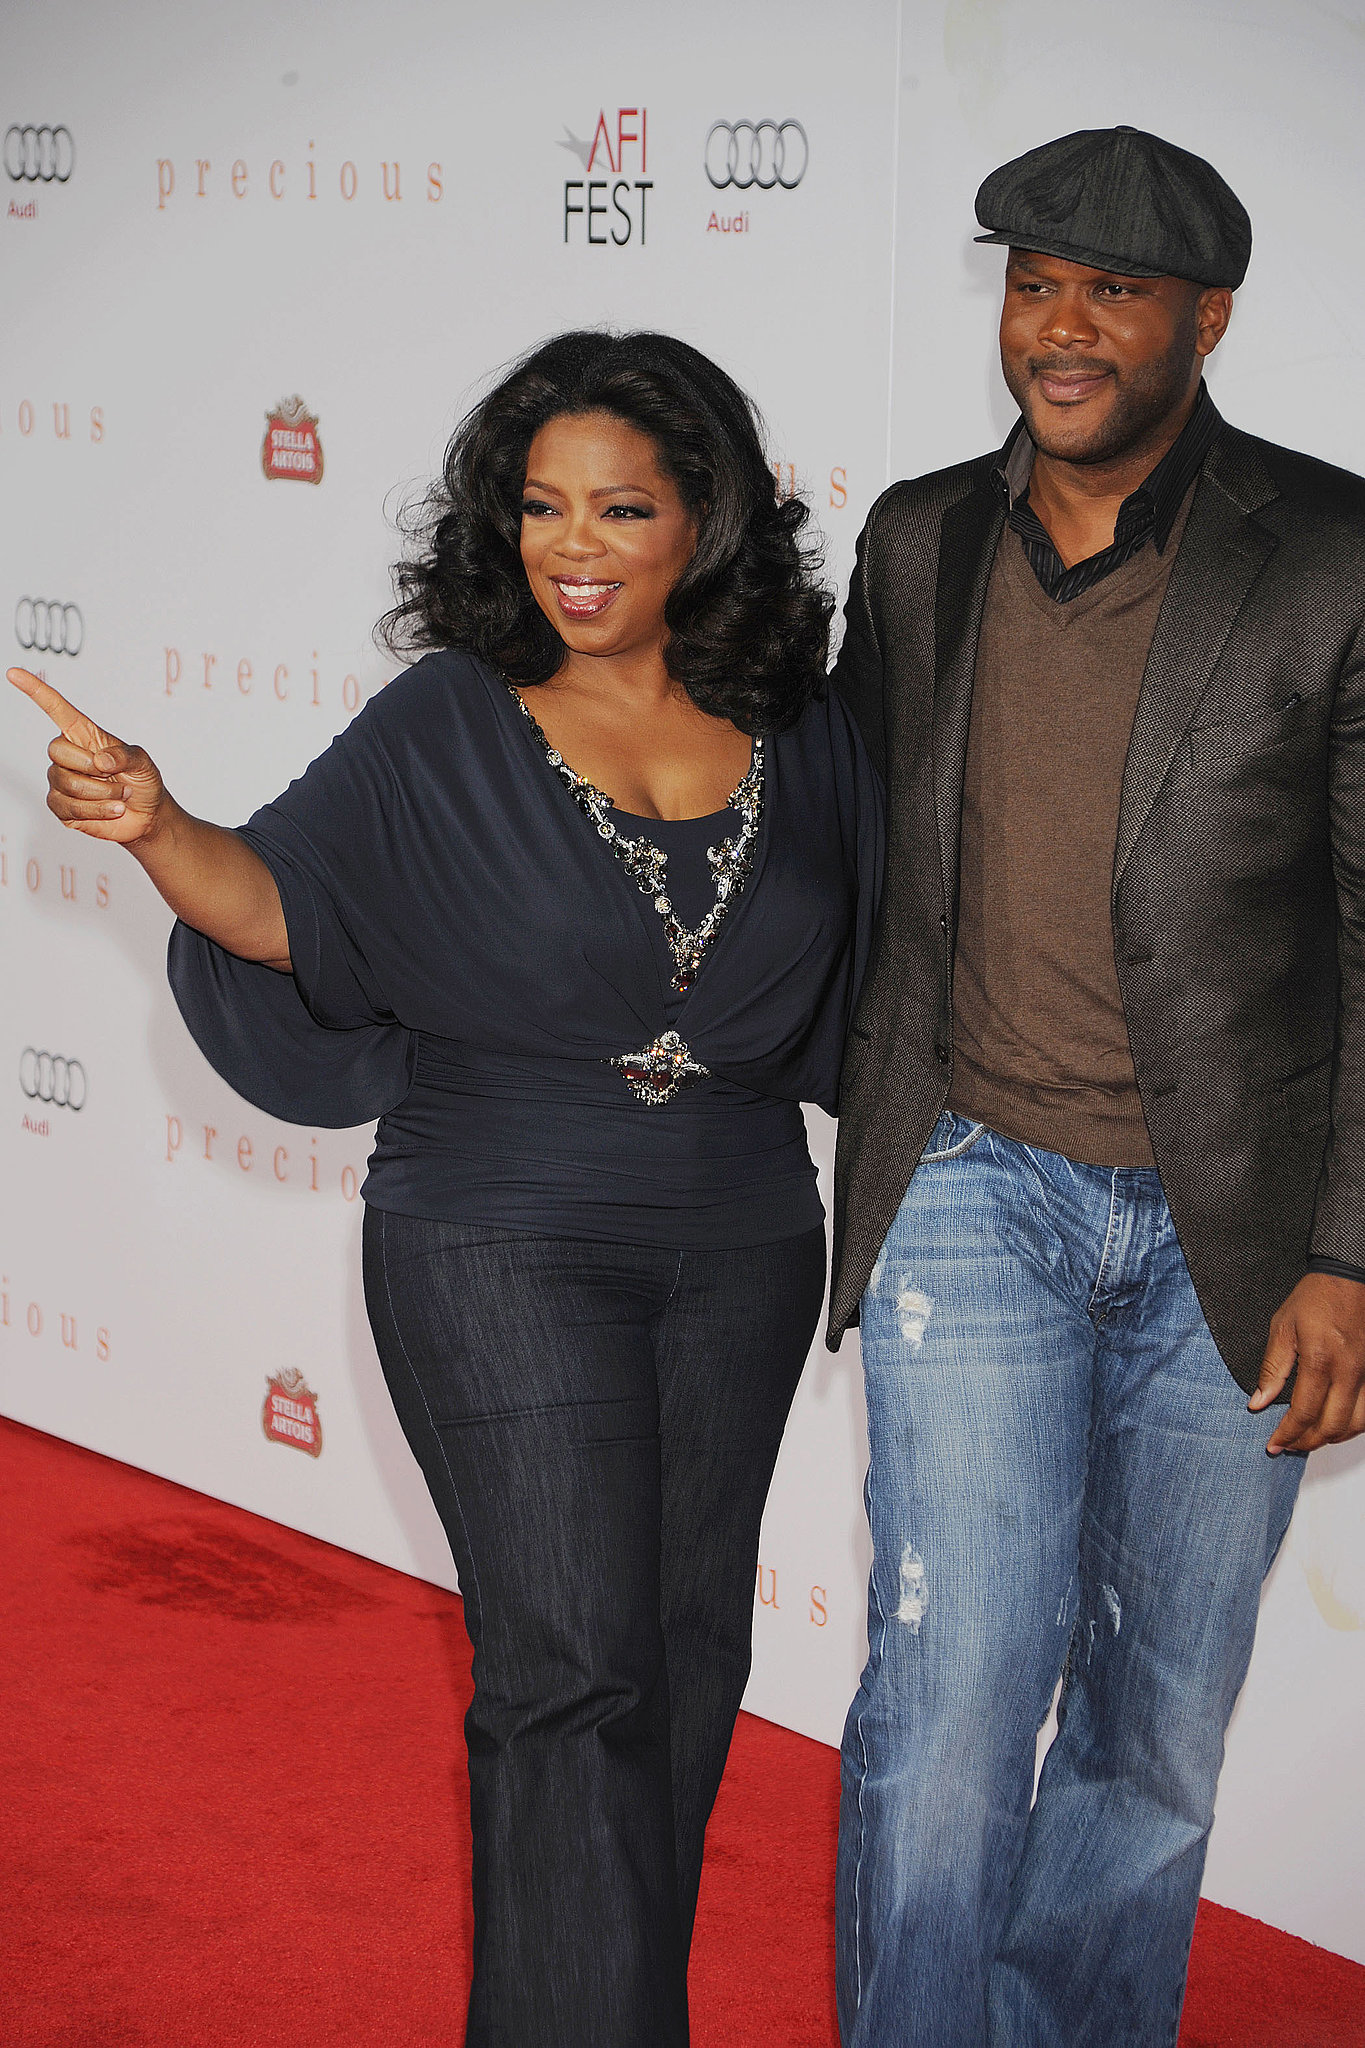 She walked the carpet for the 2009 screening of Precious.